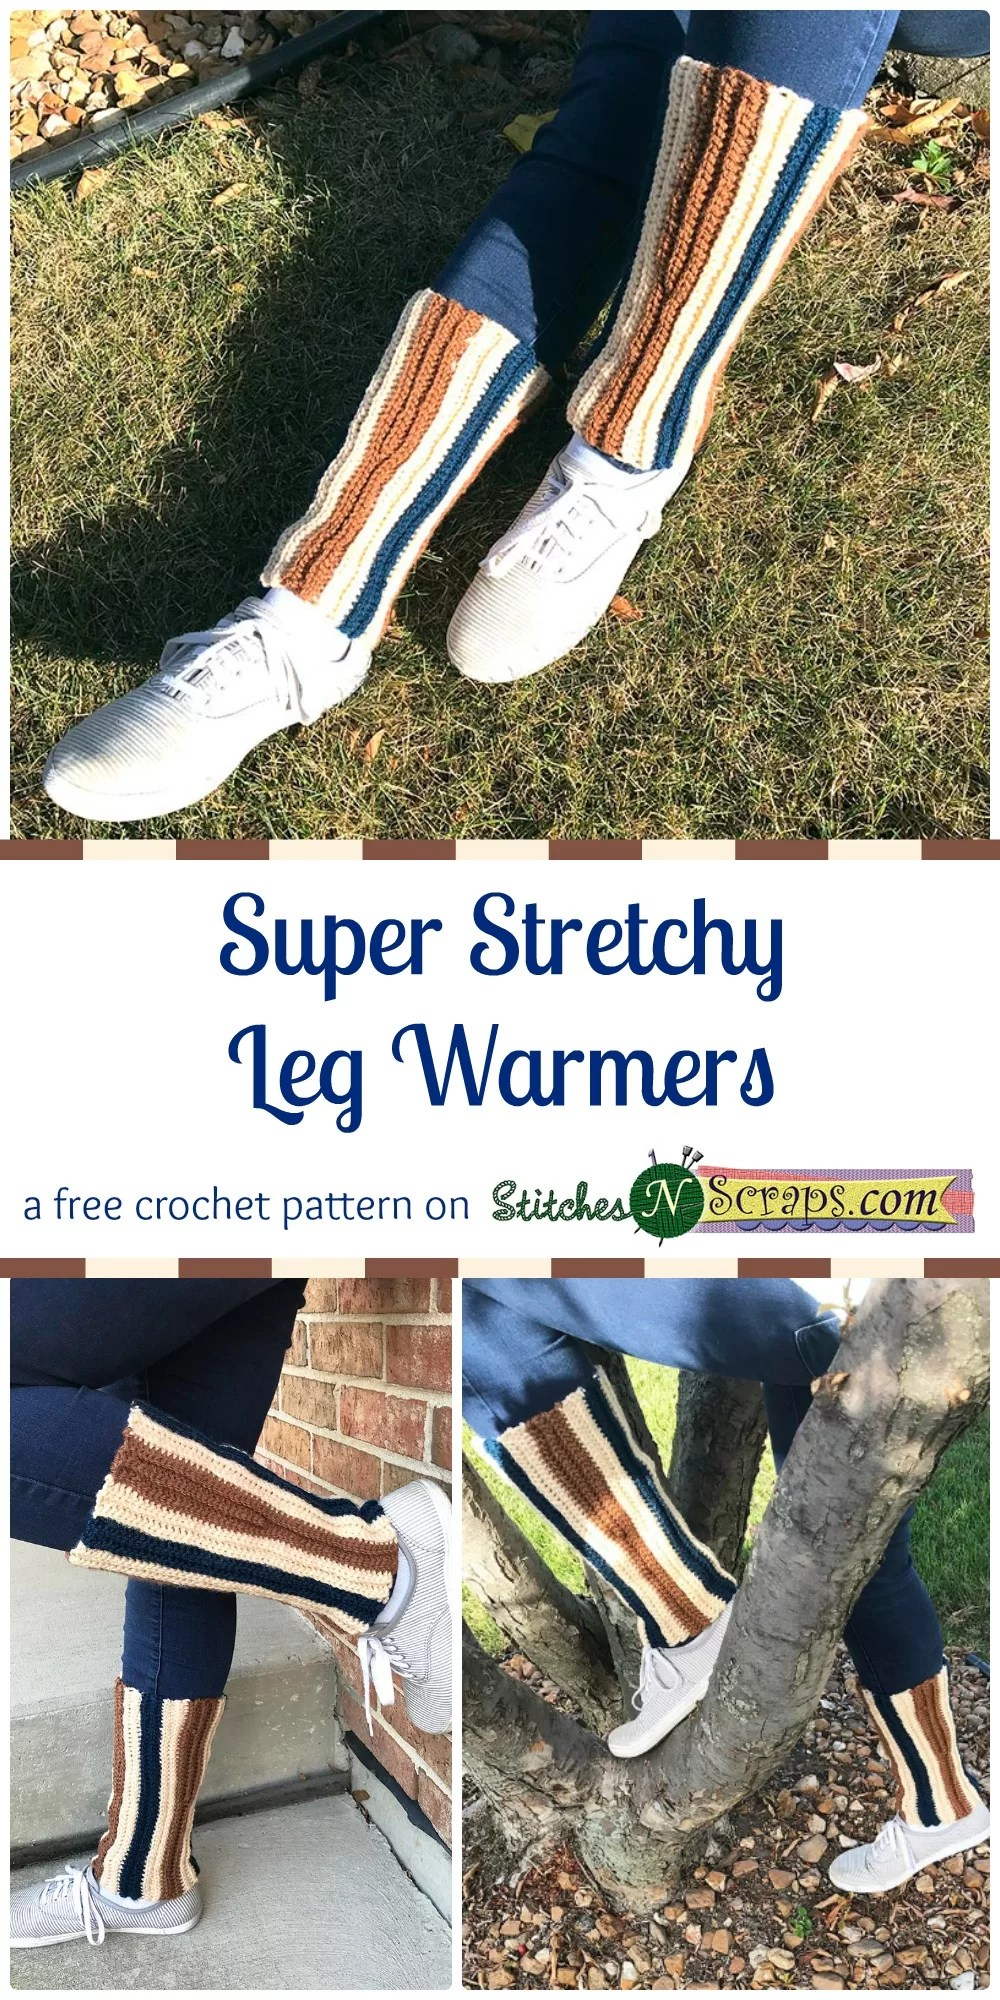 Free Pattern Super Stretchy Leg Warmers Stitches N Scraps